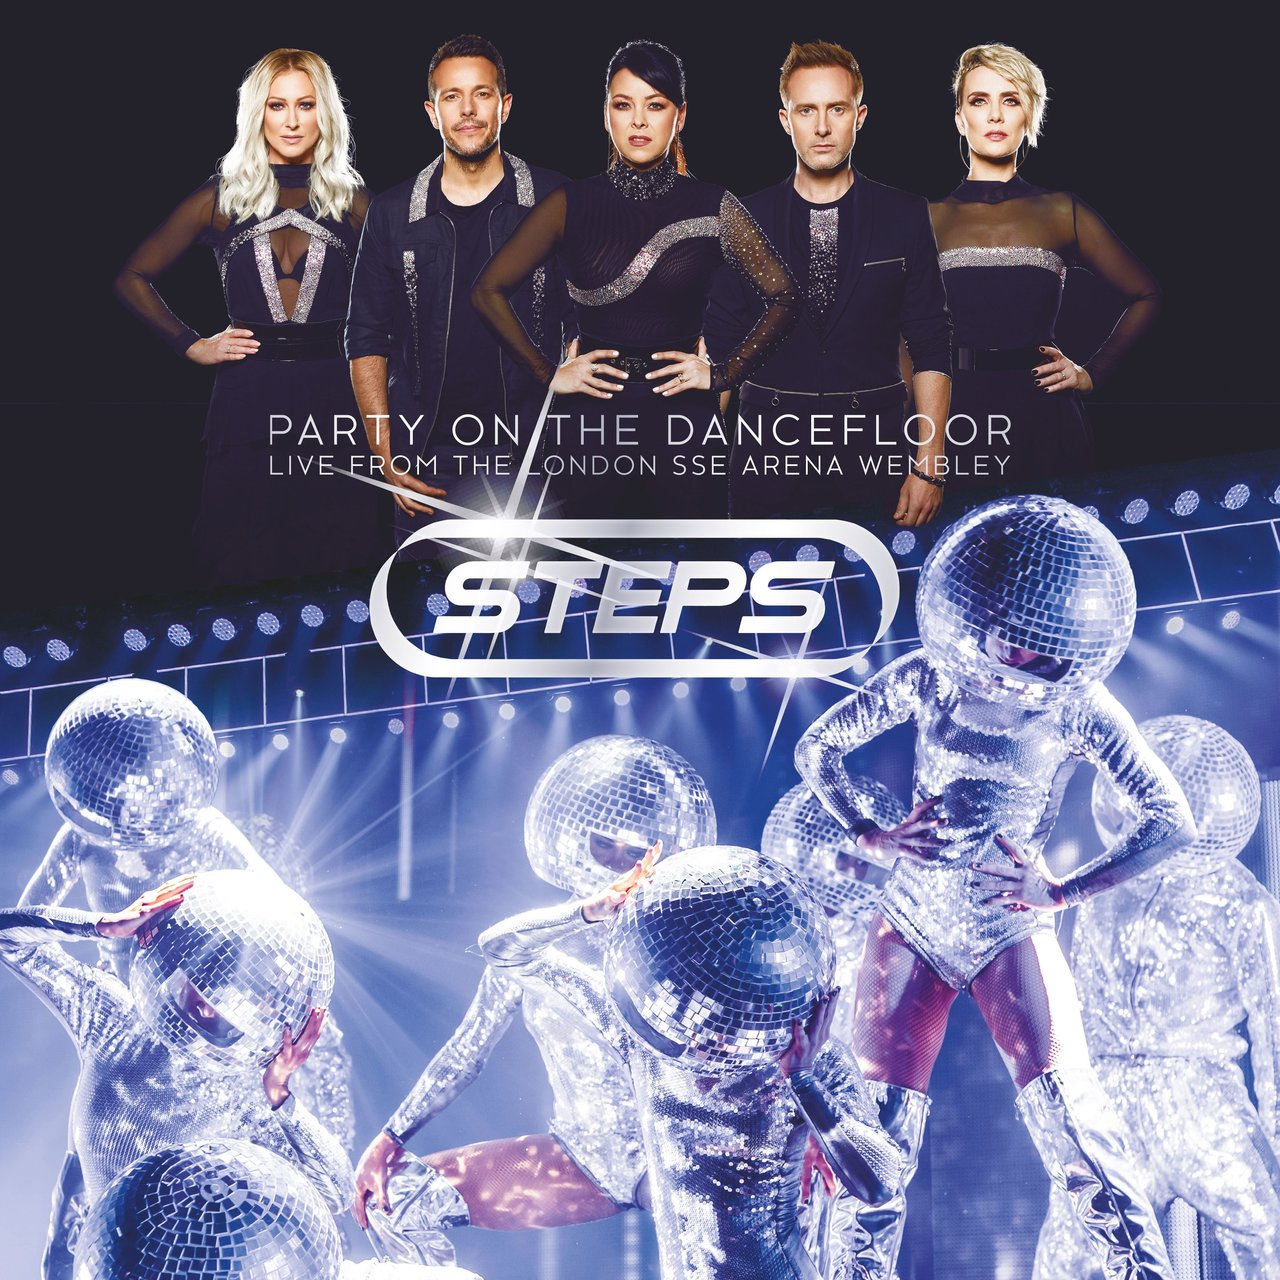 STEPS: Party On The Dancefloor - LIVE